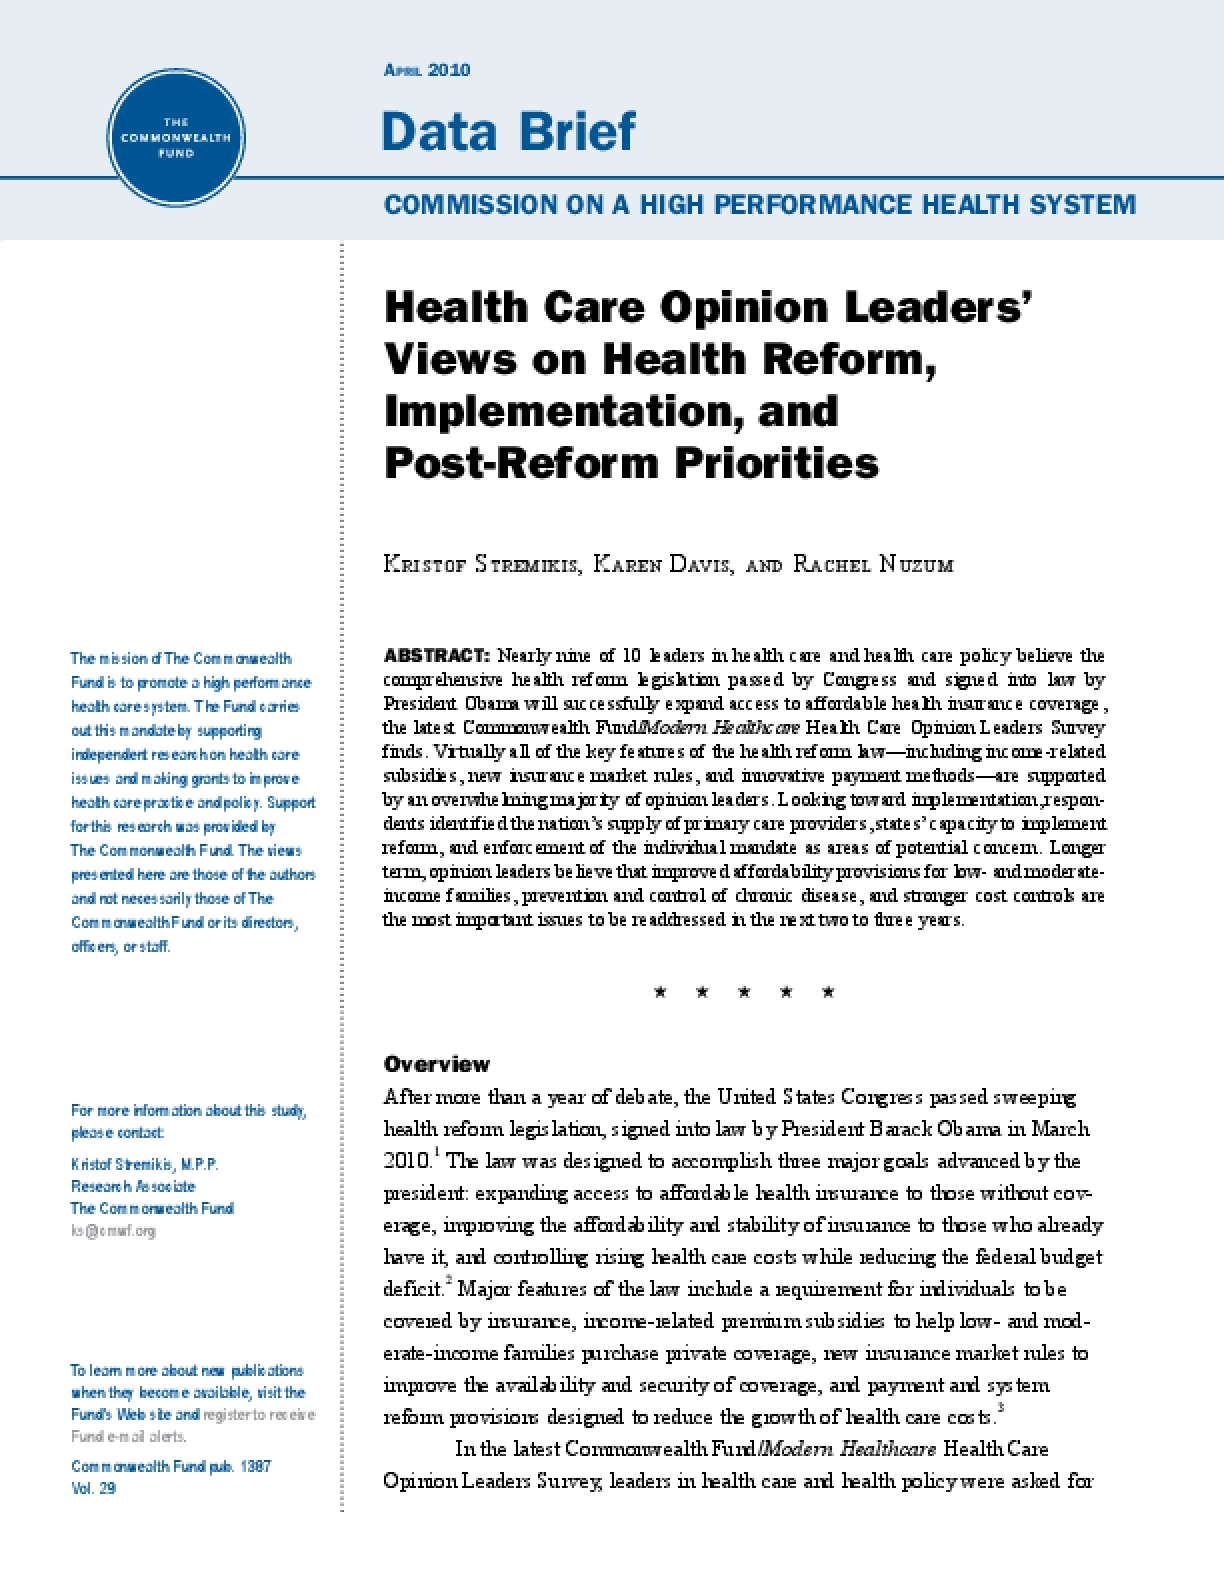 Health Care Opinion Leaders' Views on Health Reform, Implementation, and Post-Reform Priorities